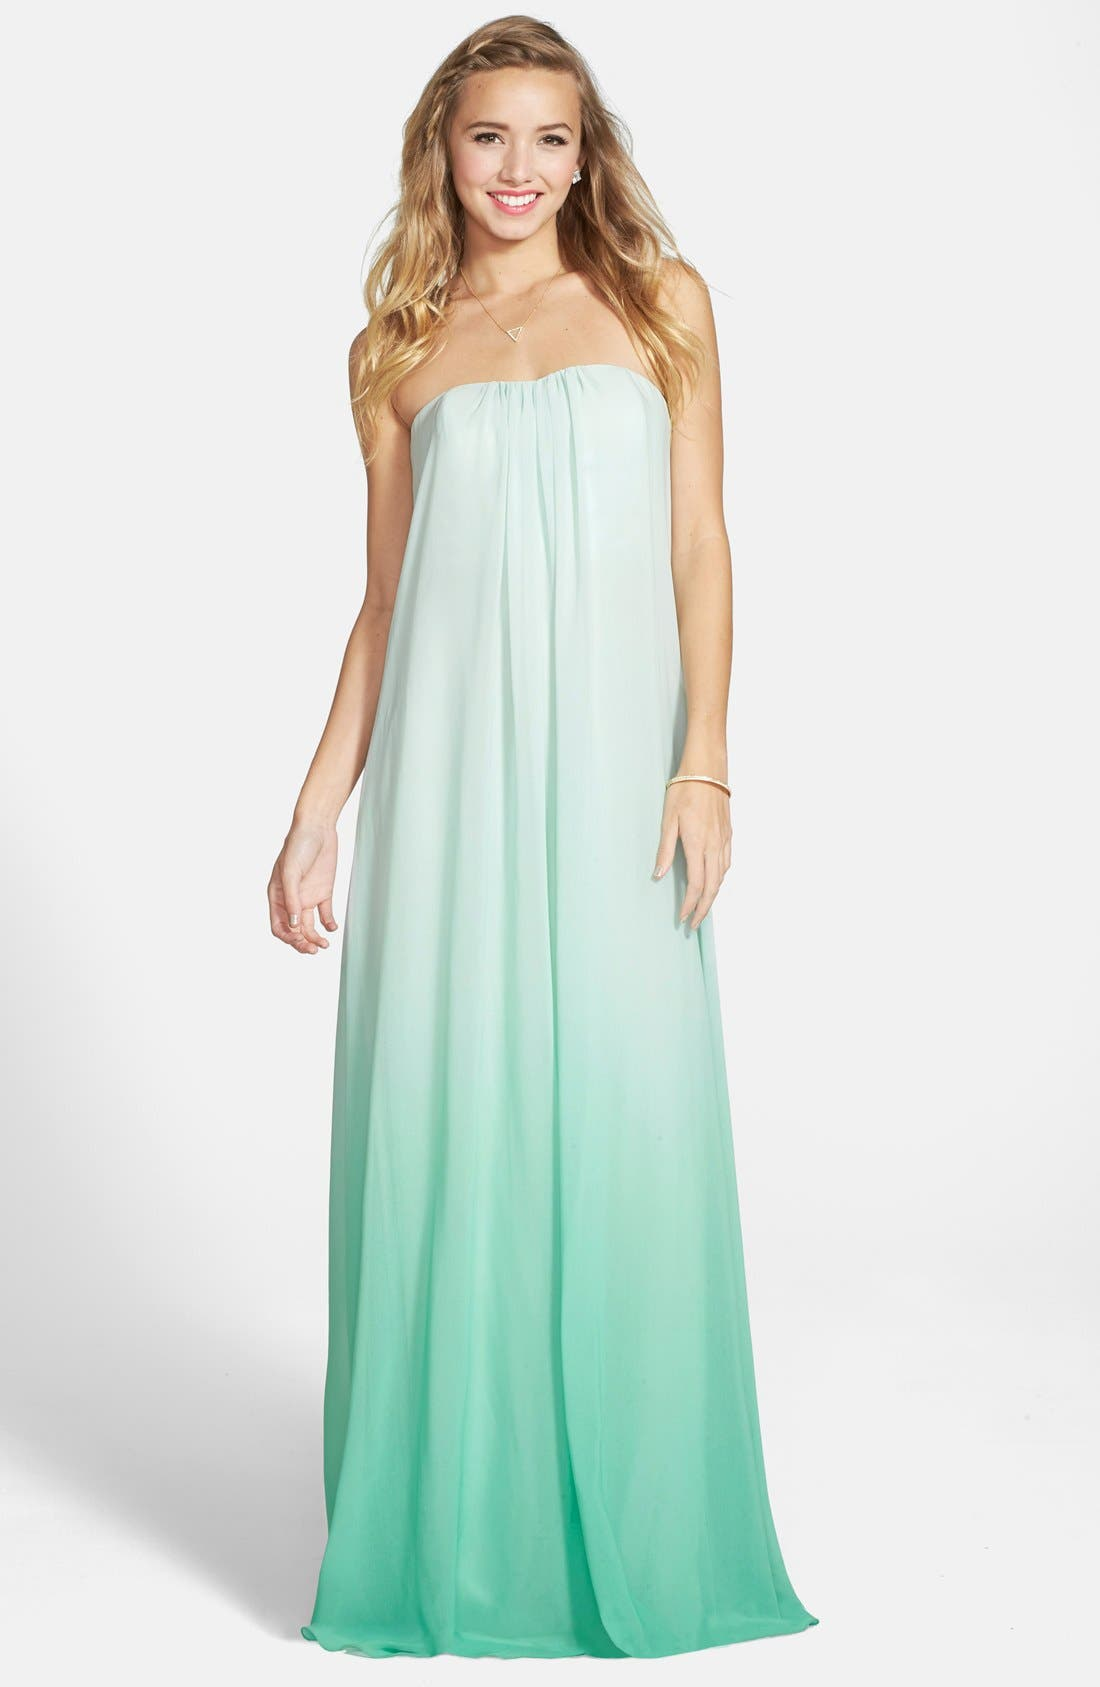 ERIN ERIN FETHERSTON 'Daria' Ombré Chiffon A-Line Gown, Main, color, 303